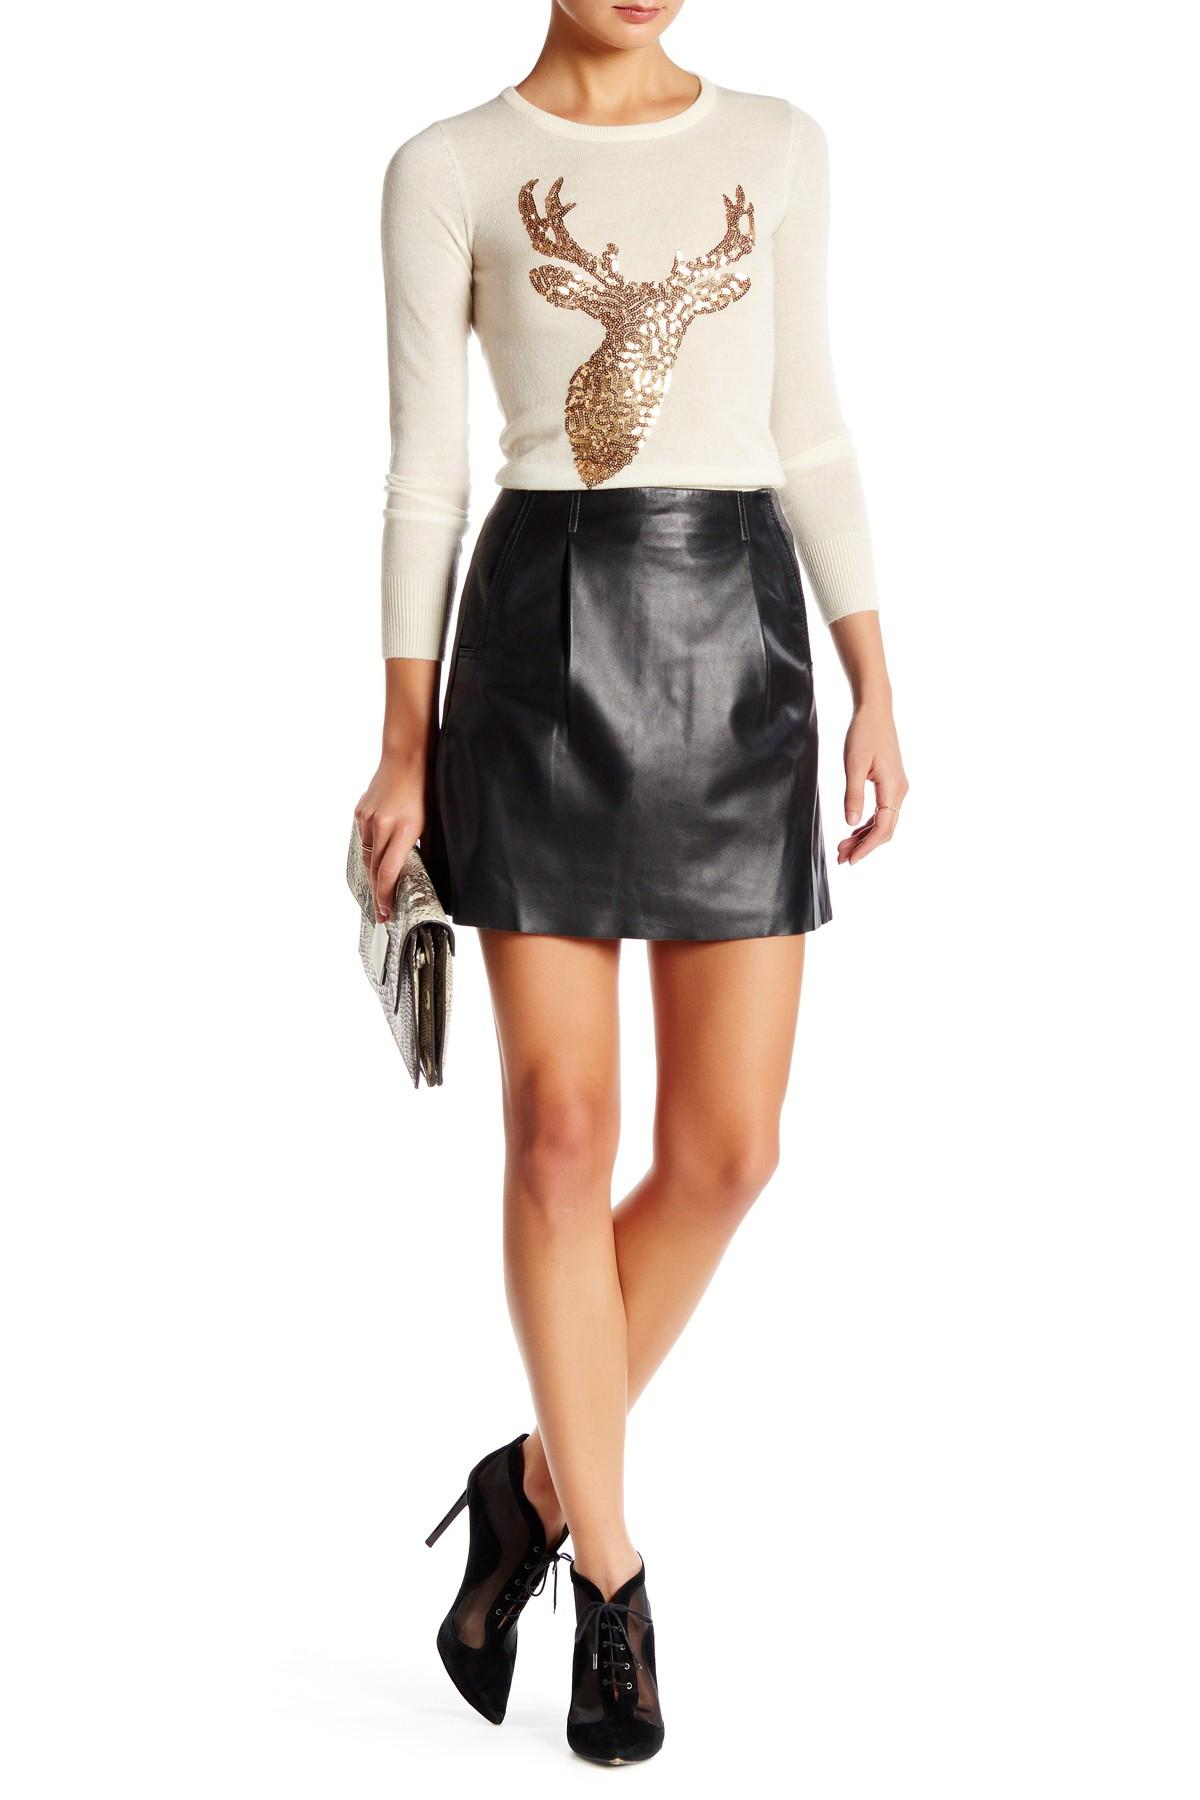 Shop authentic Skirts at up to 90% off. The RealReal is the world's #1 luxury consignment online store.